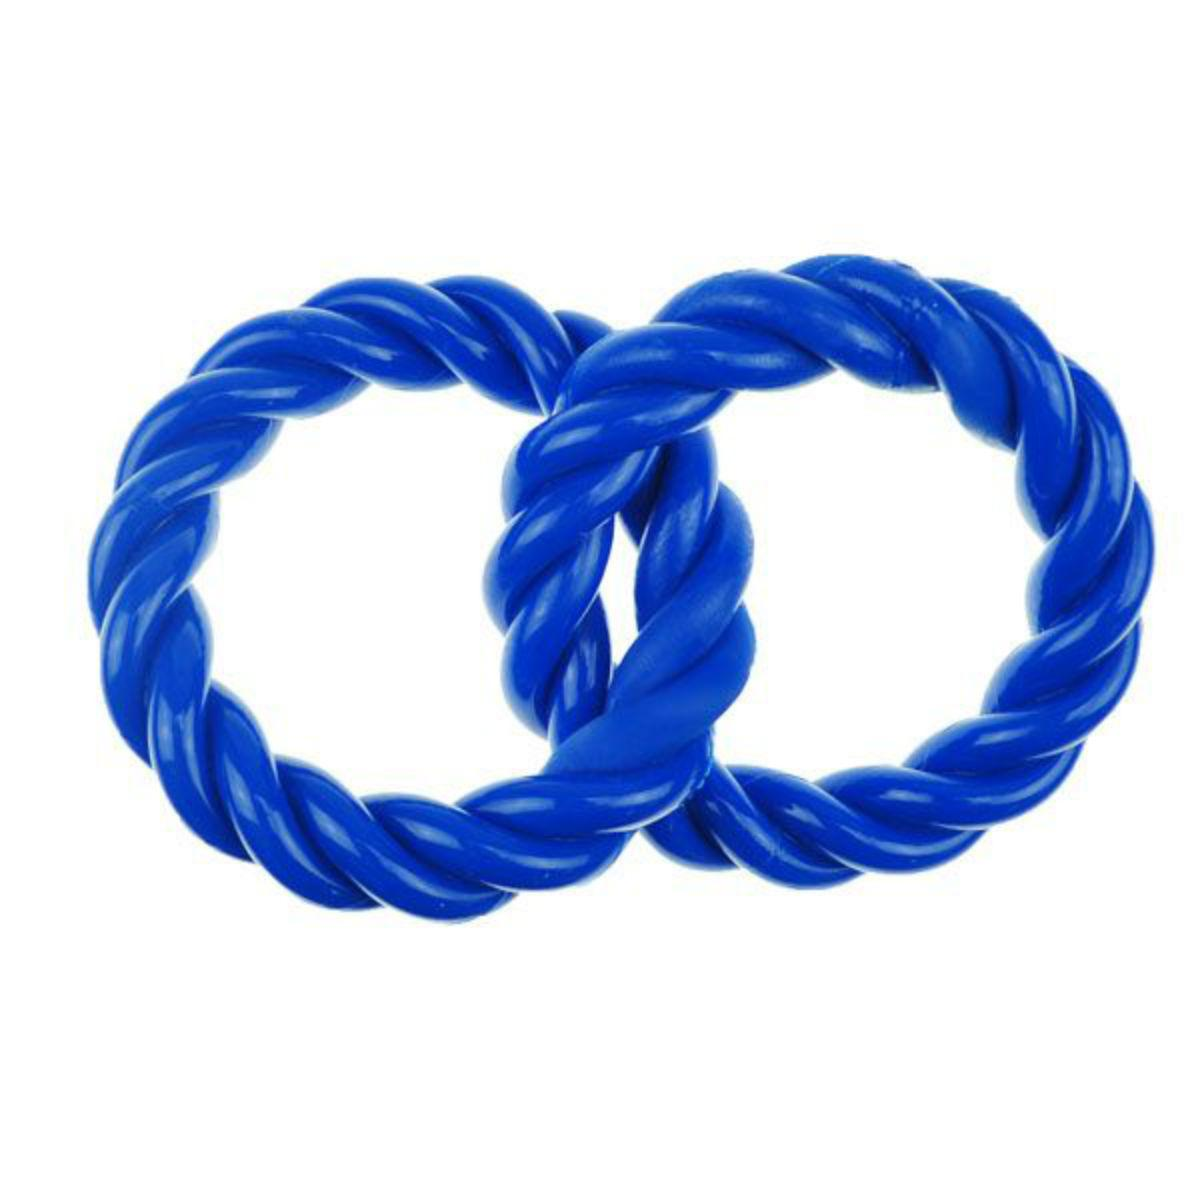 Infinity TPR 2 Rings Dog Toy - Blue